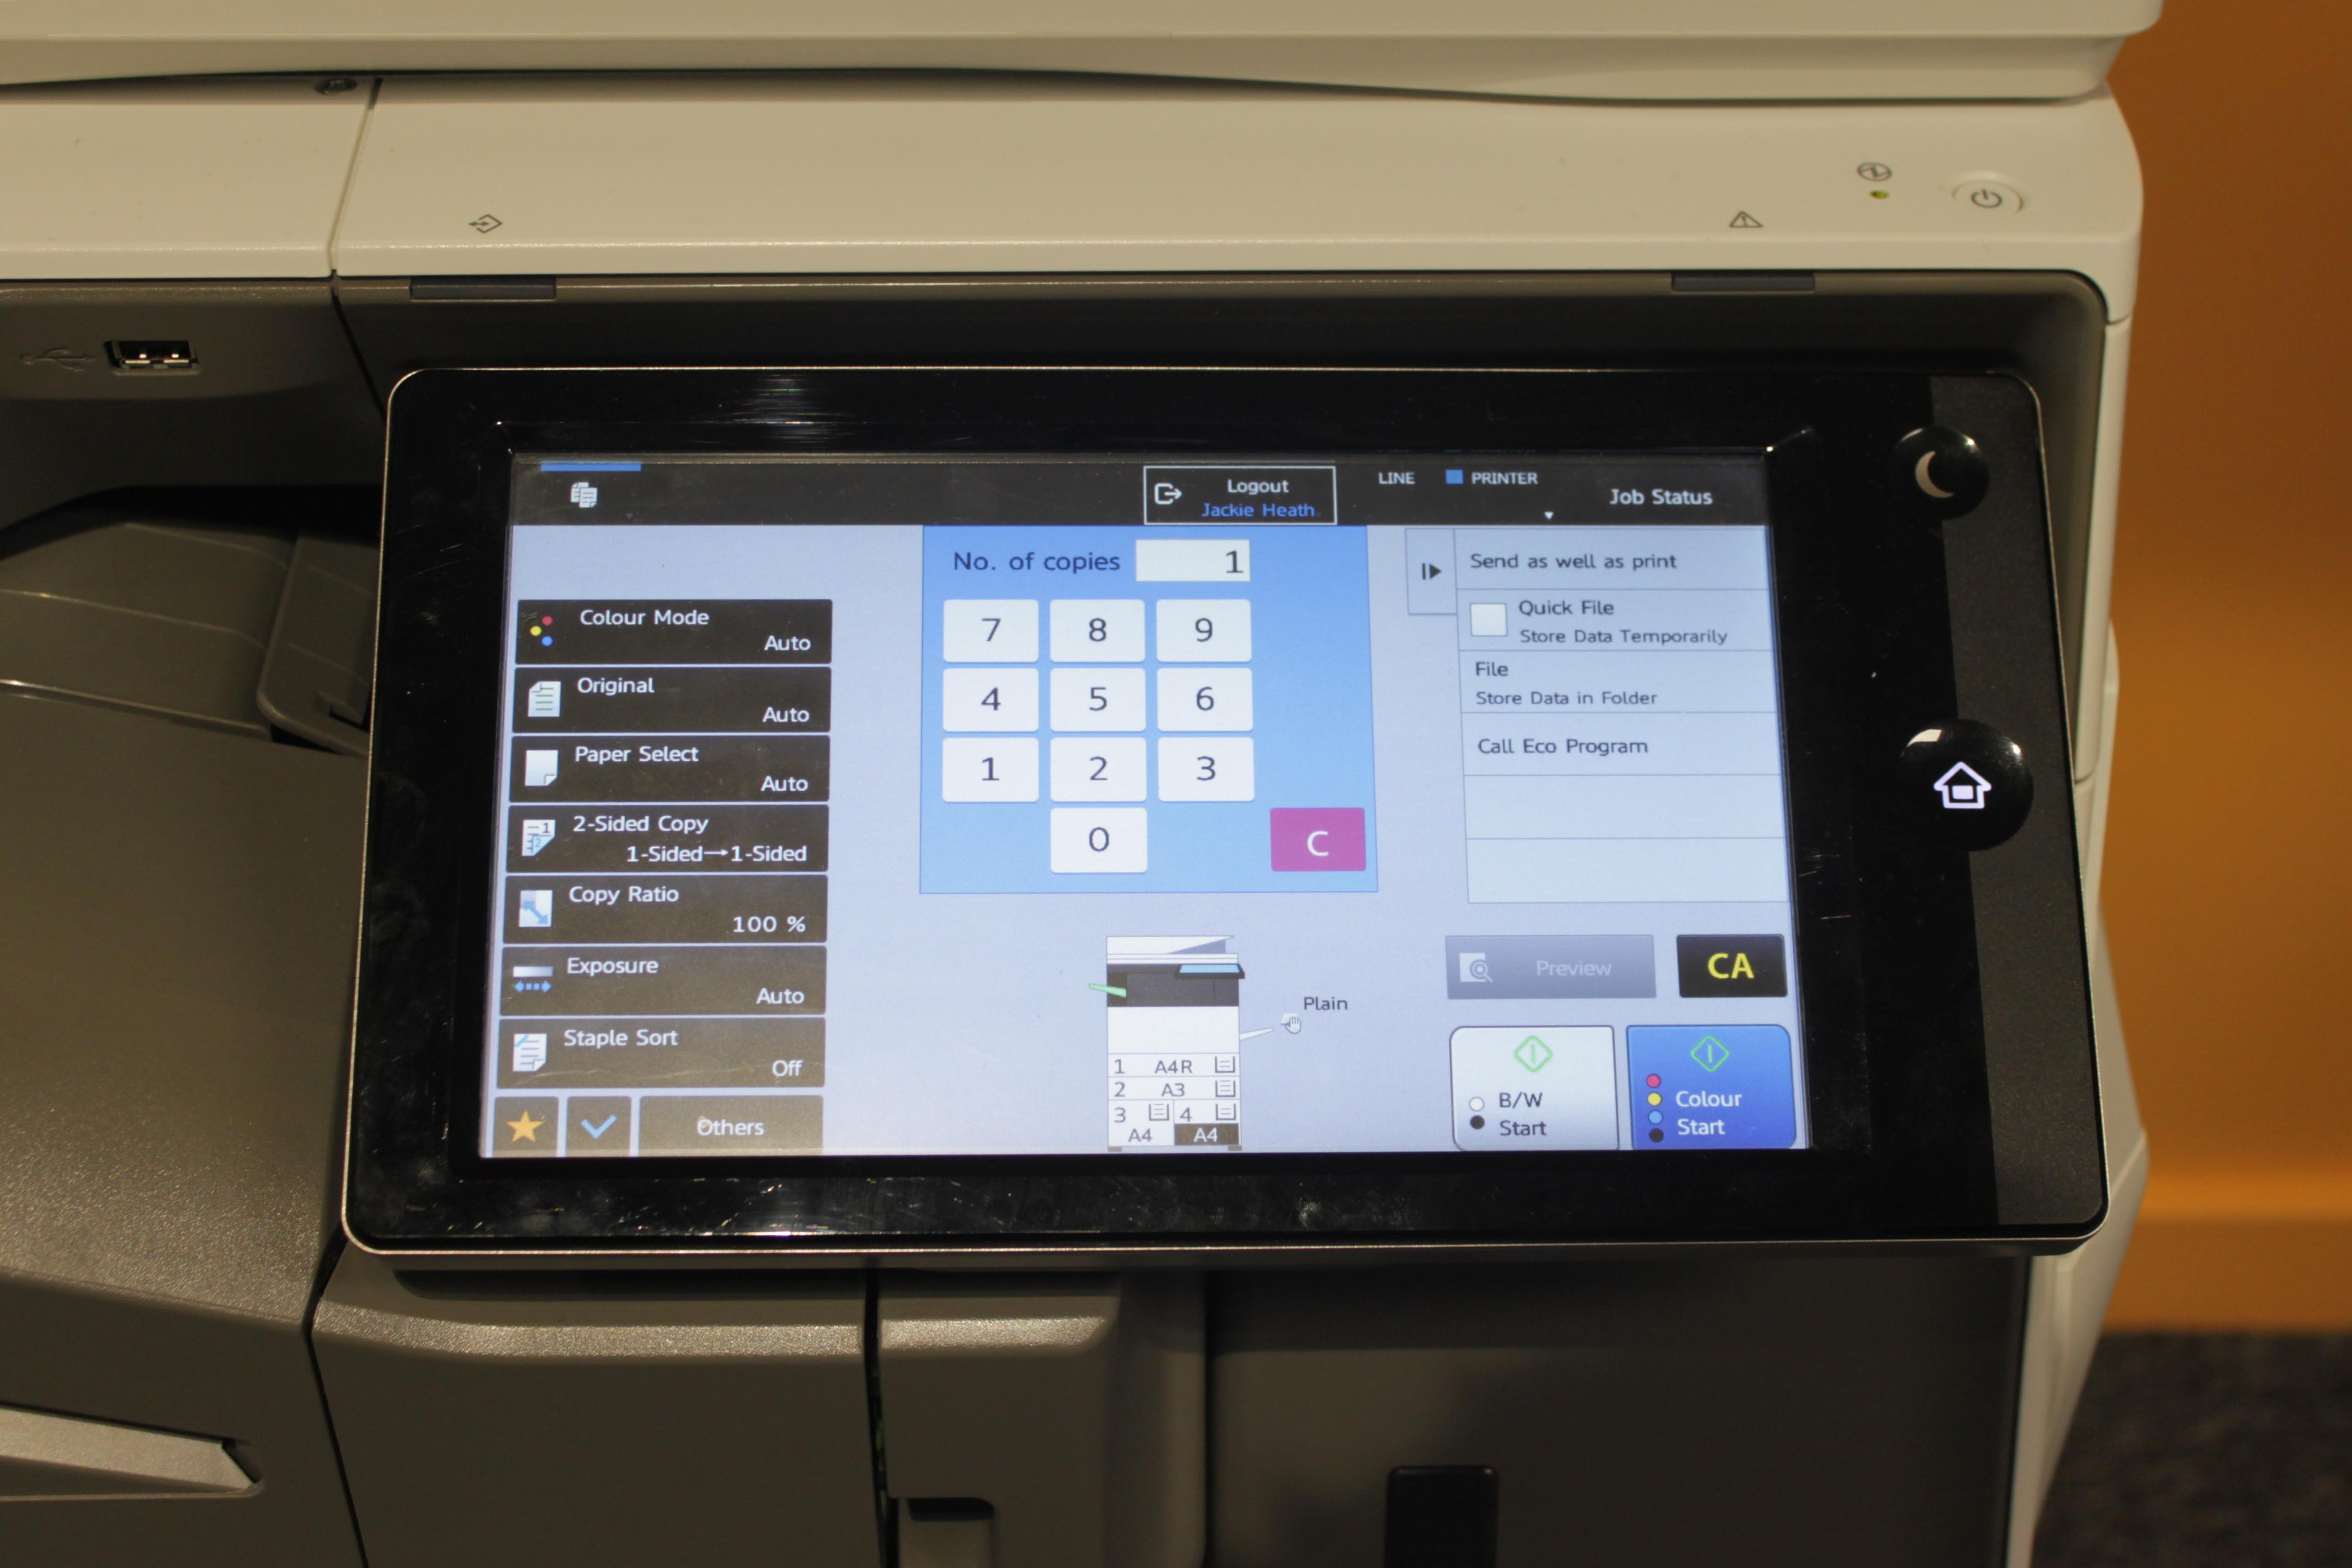 Image of the photocopying screen, with the various options and 'start' buttons.